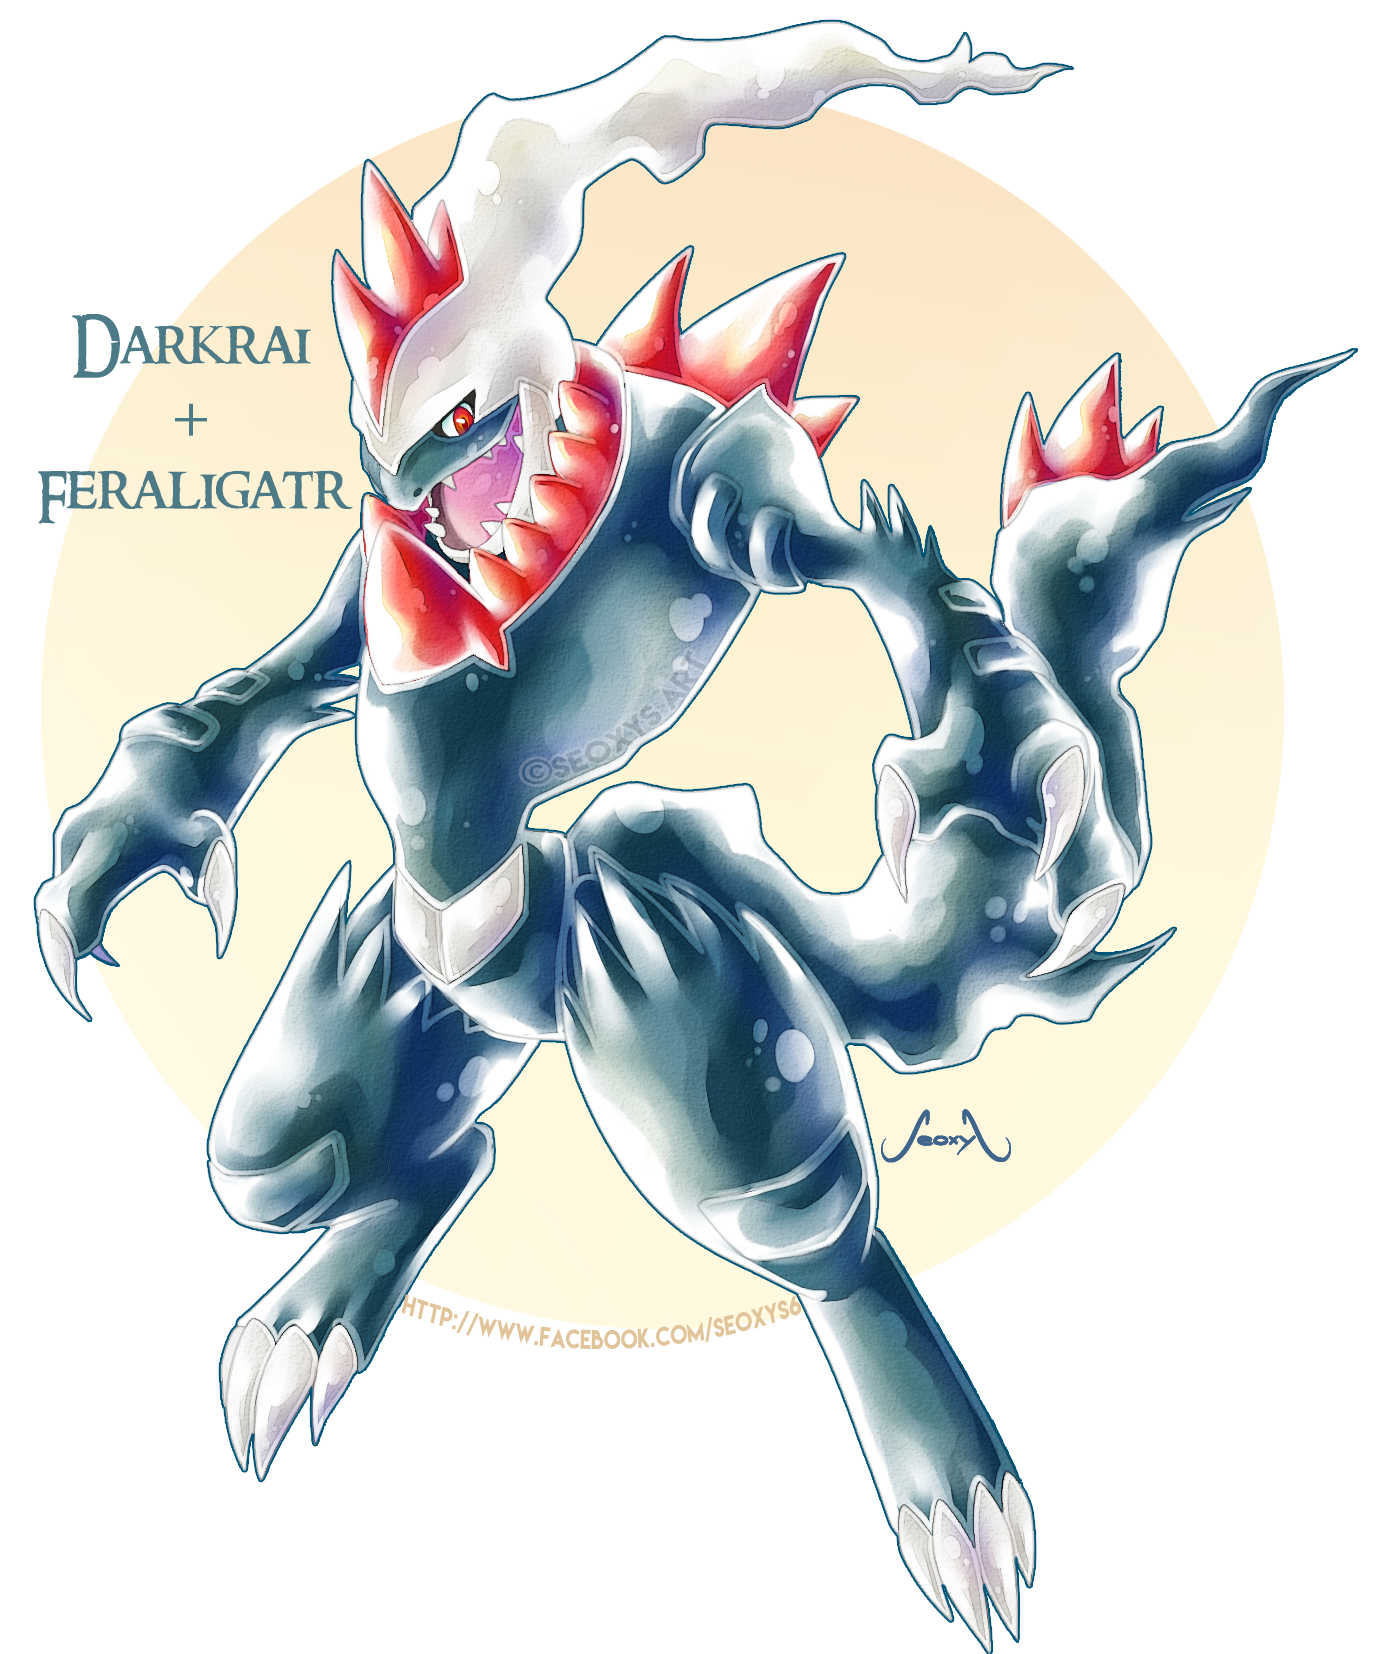 Darkrai drawing pencil. Drawings on paigeeworld pictures